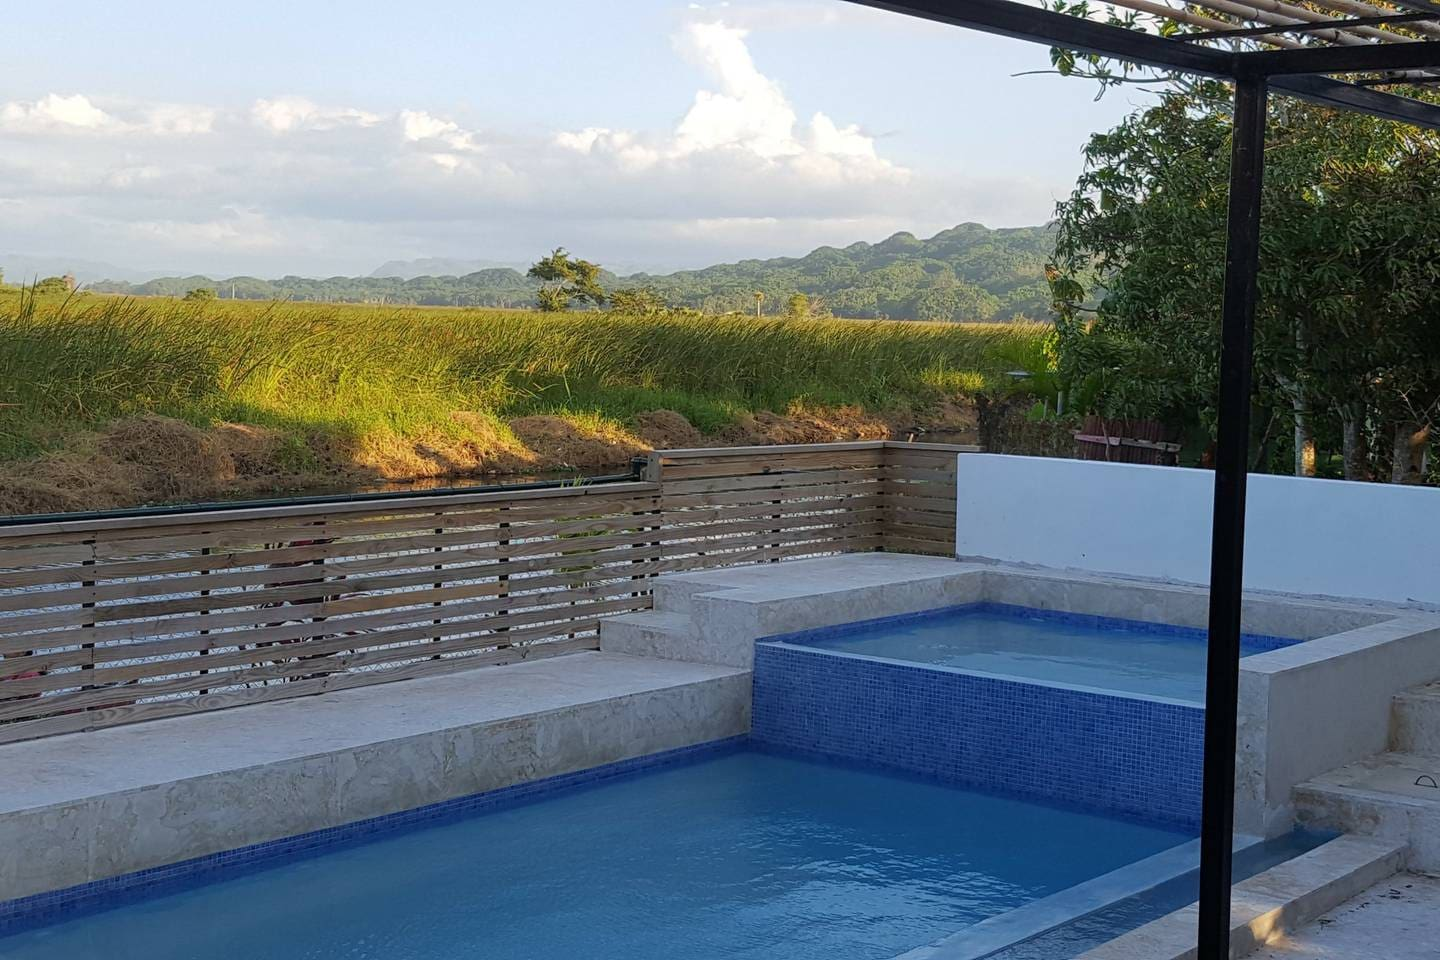 Enjoy the pool while looking out to the mountains